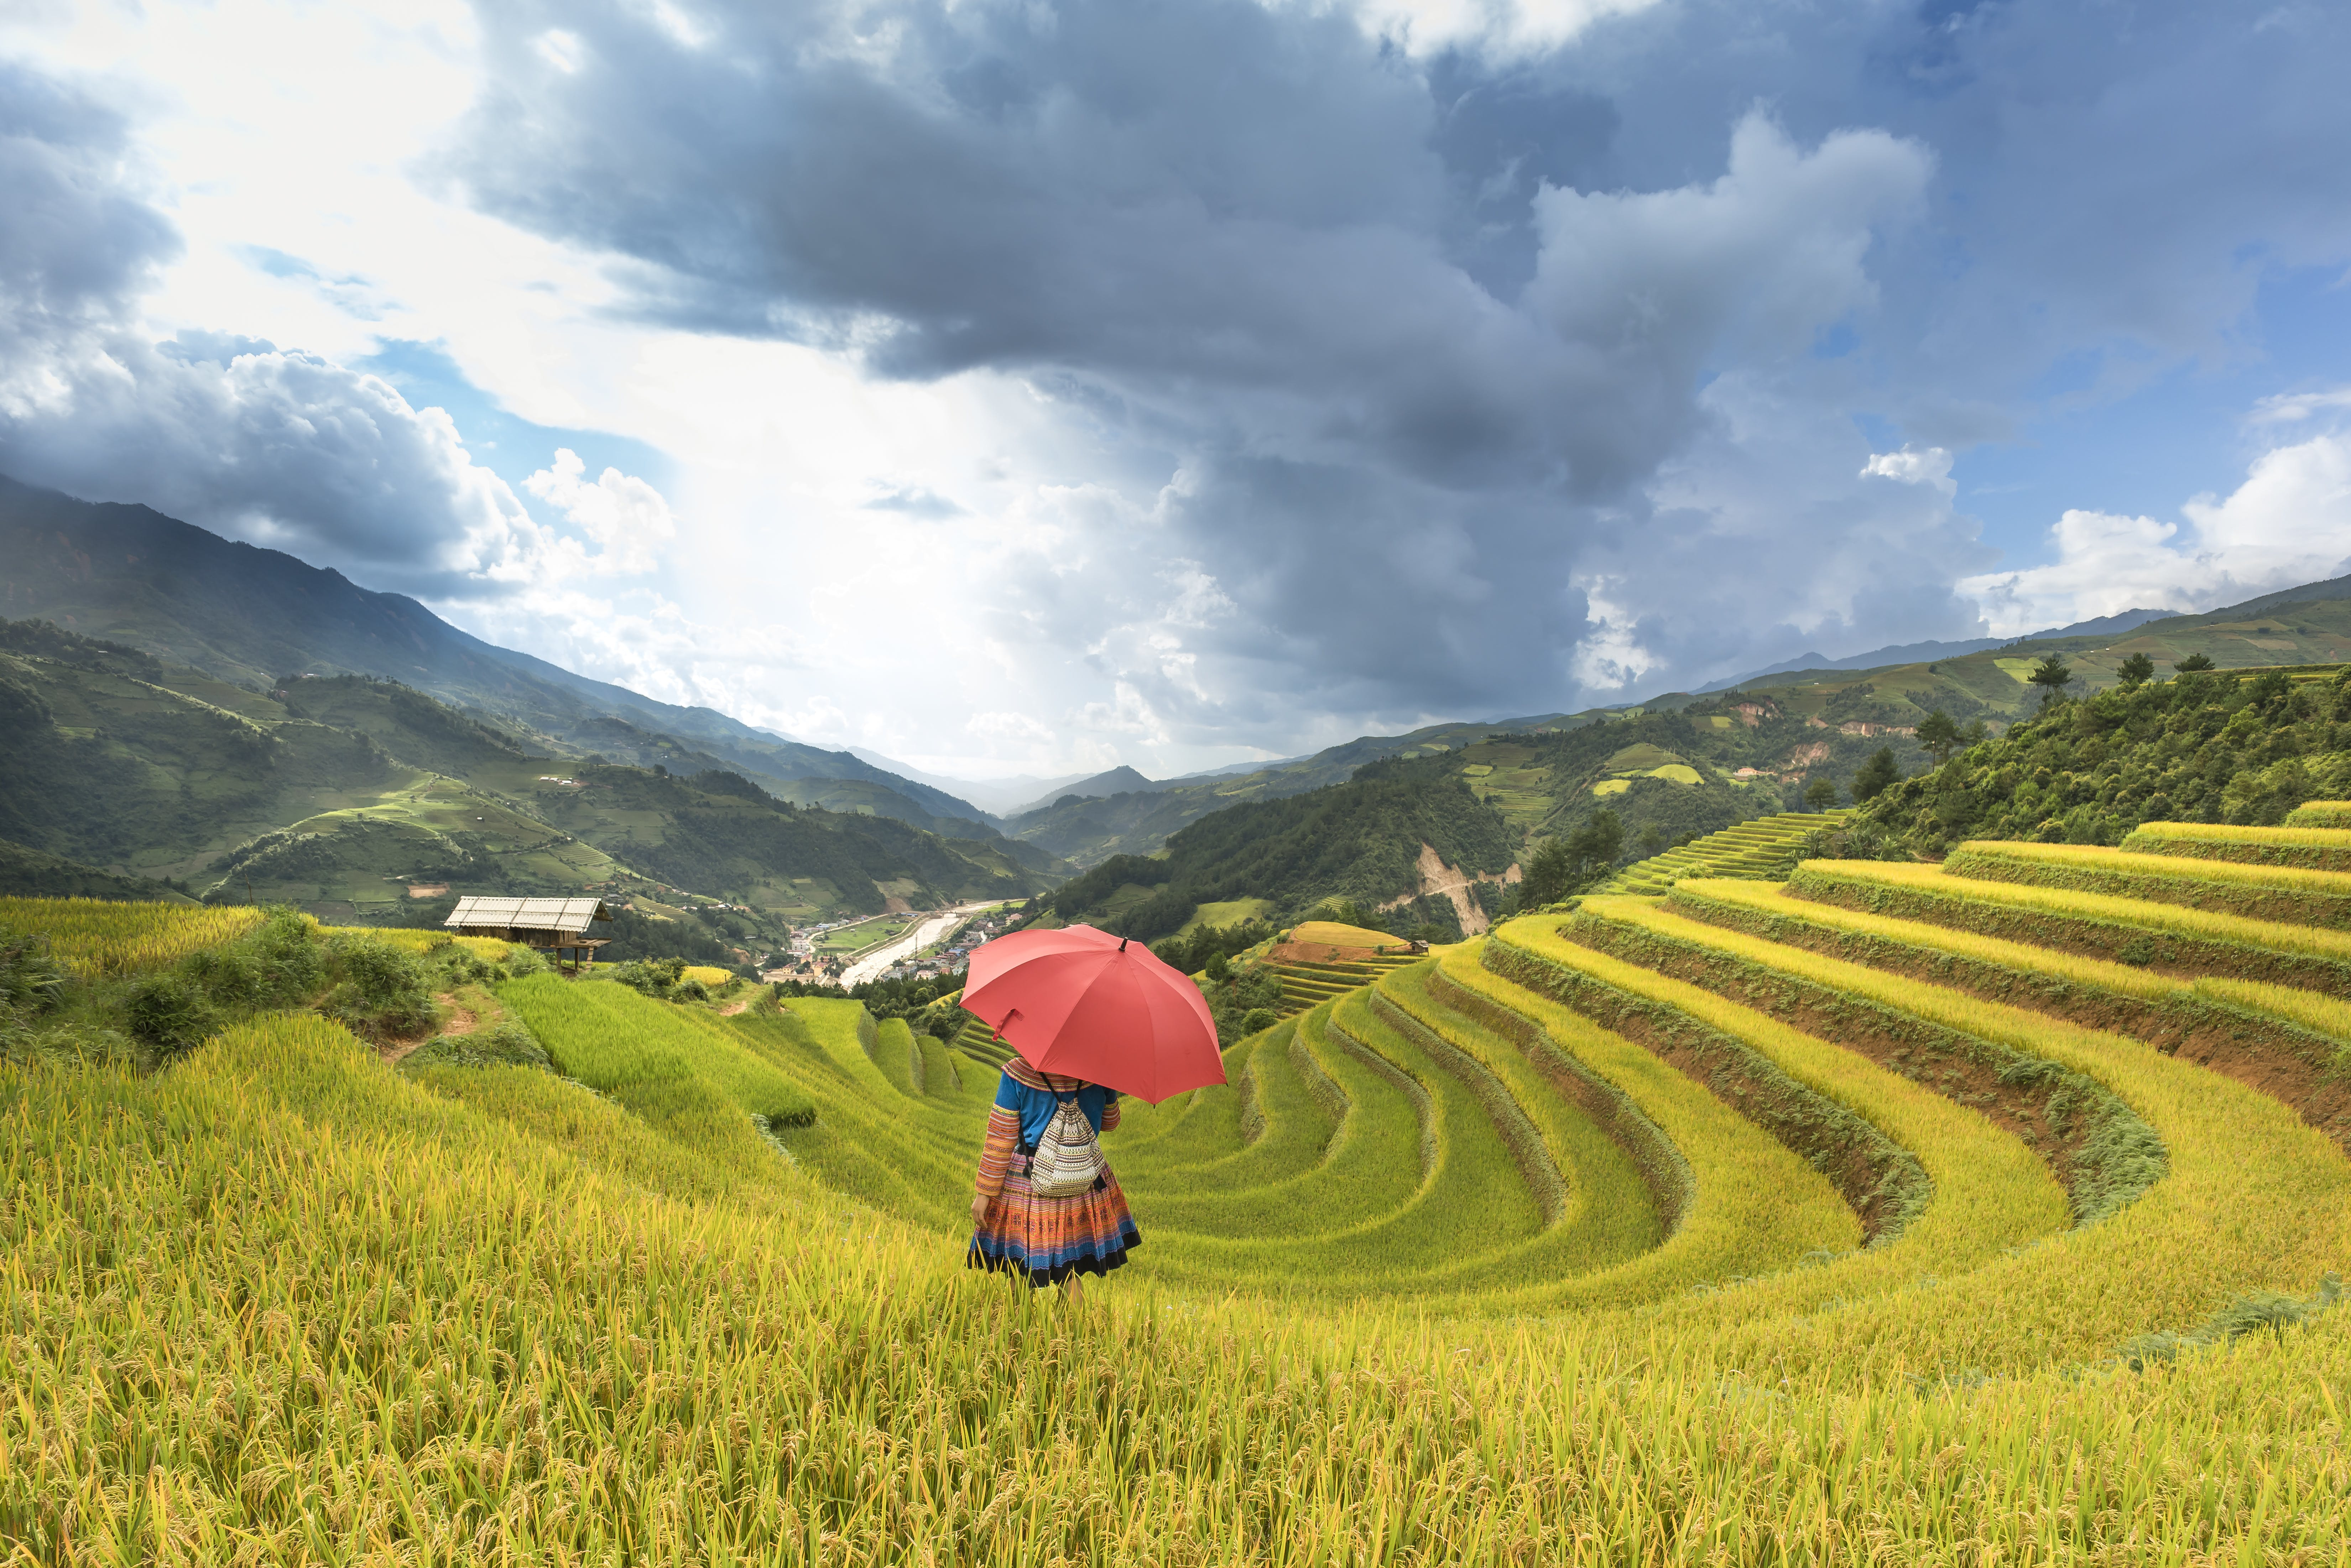 Person Under Red Umbrella Standing On Rice Terraces